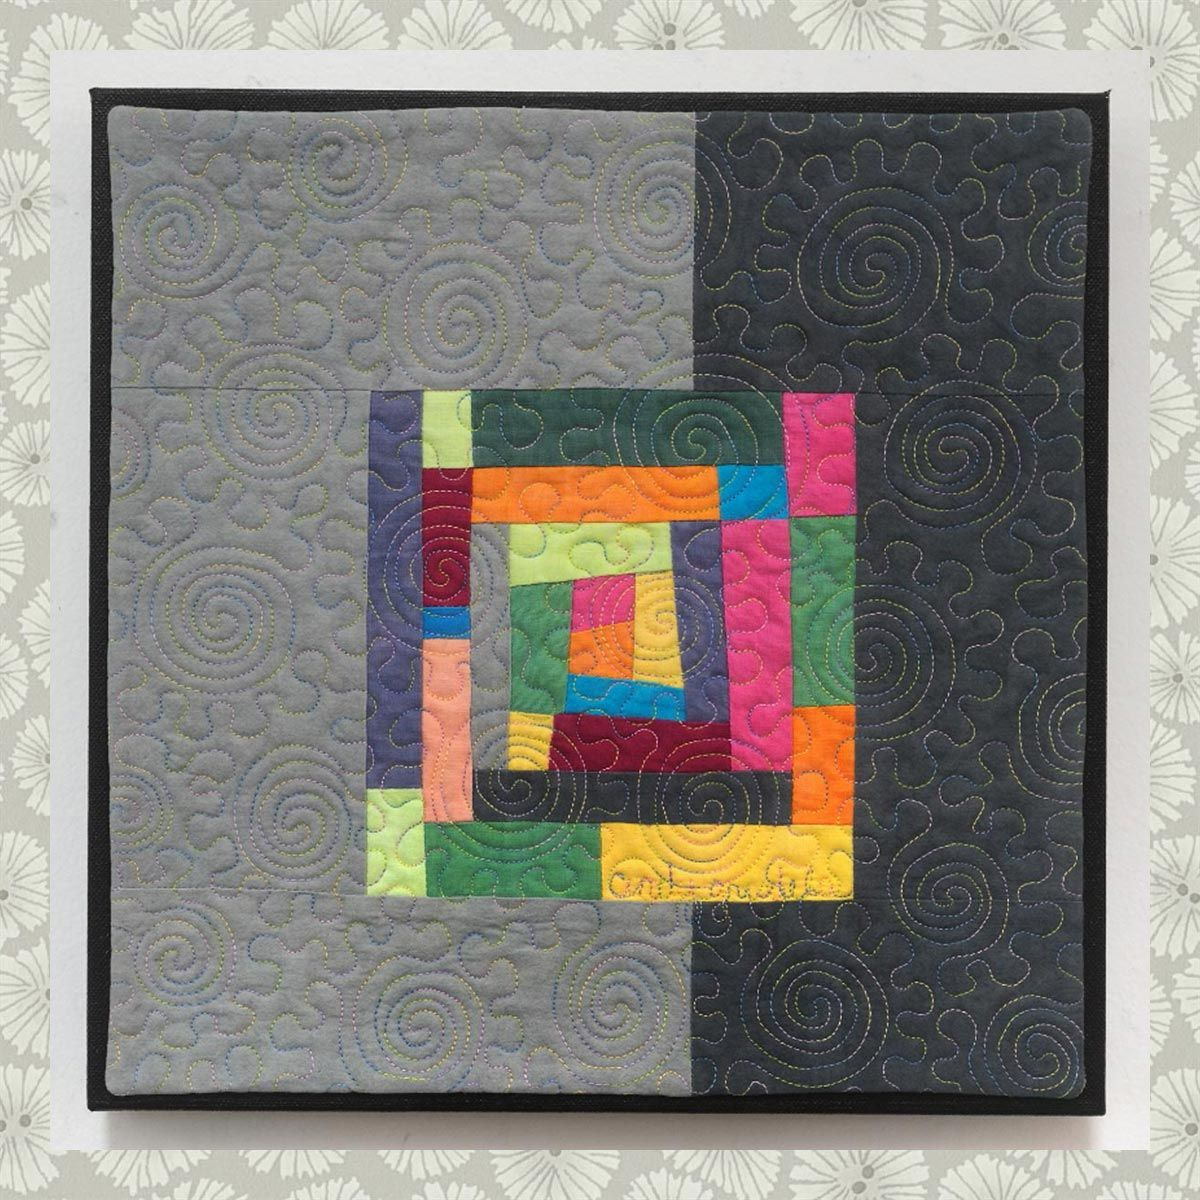 quilt edit quilting quilts art wiki wikipedia